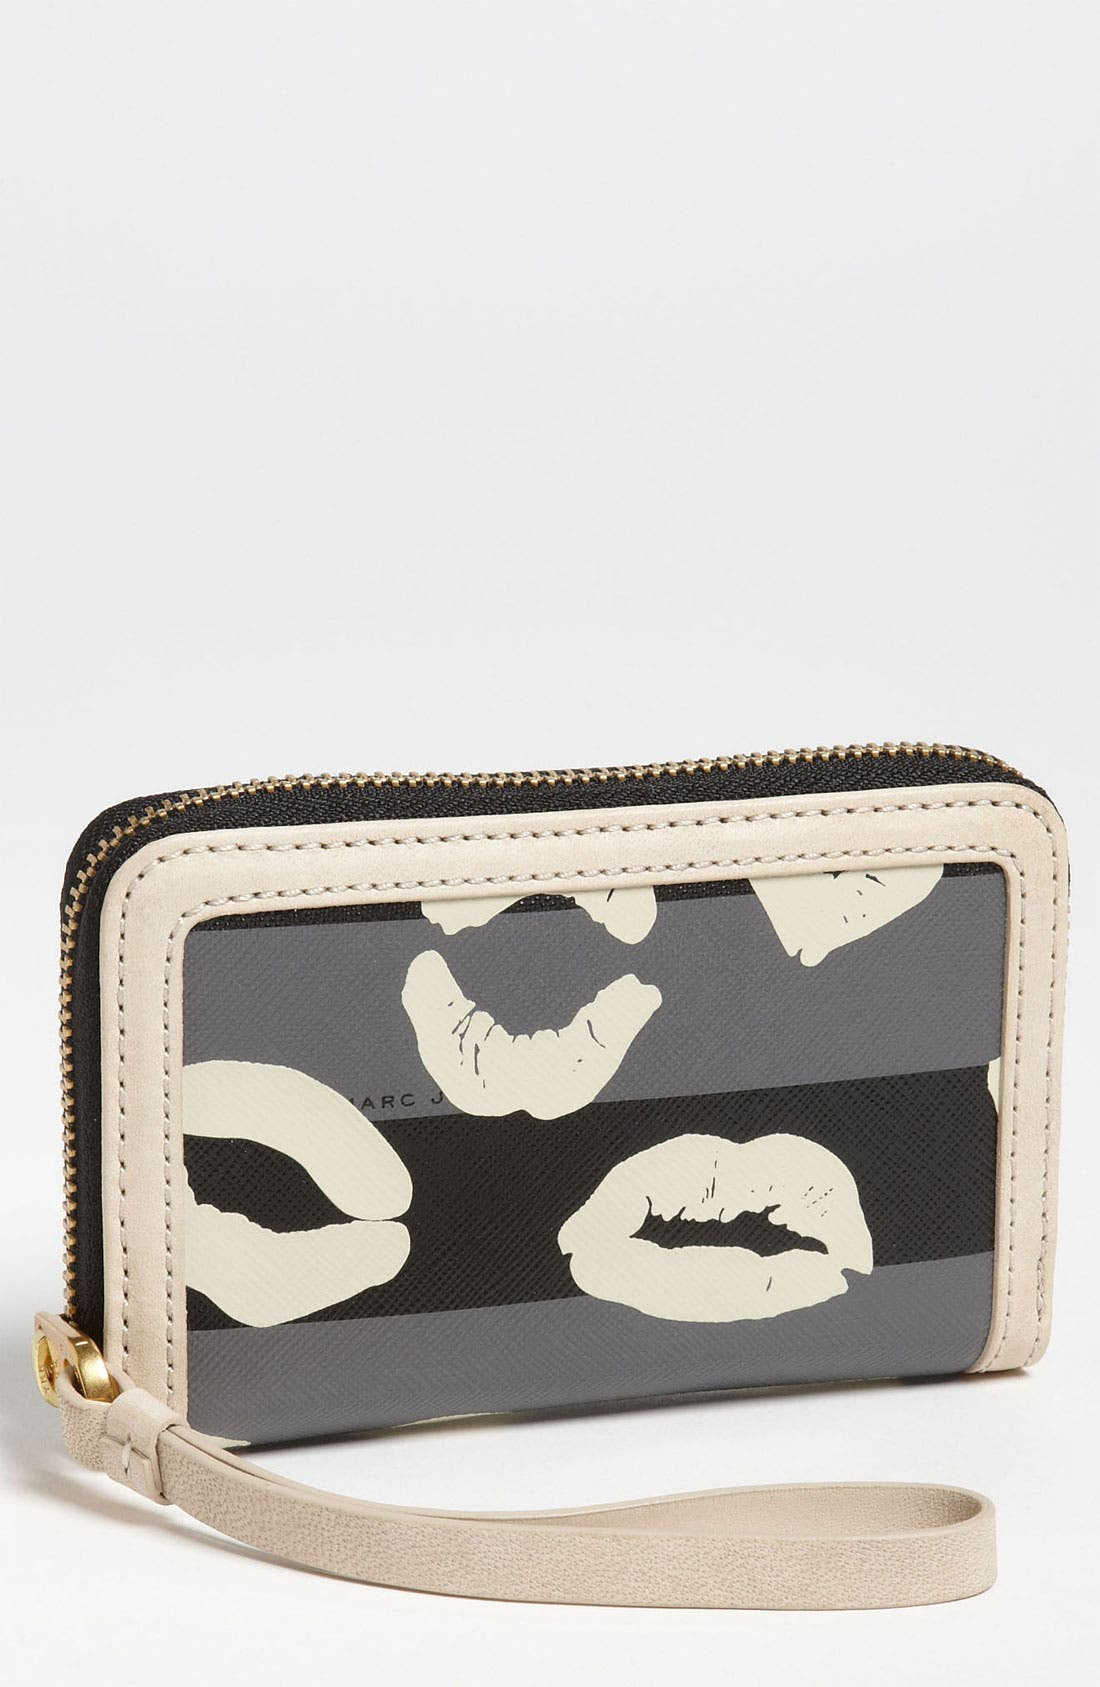 Alternate Image 1 Selected - MARC BY MARC JACOBS 'Eazy Pouch - Wingman B' Phone Wallet